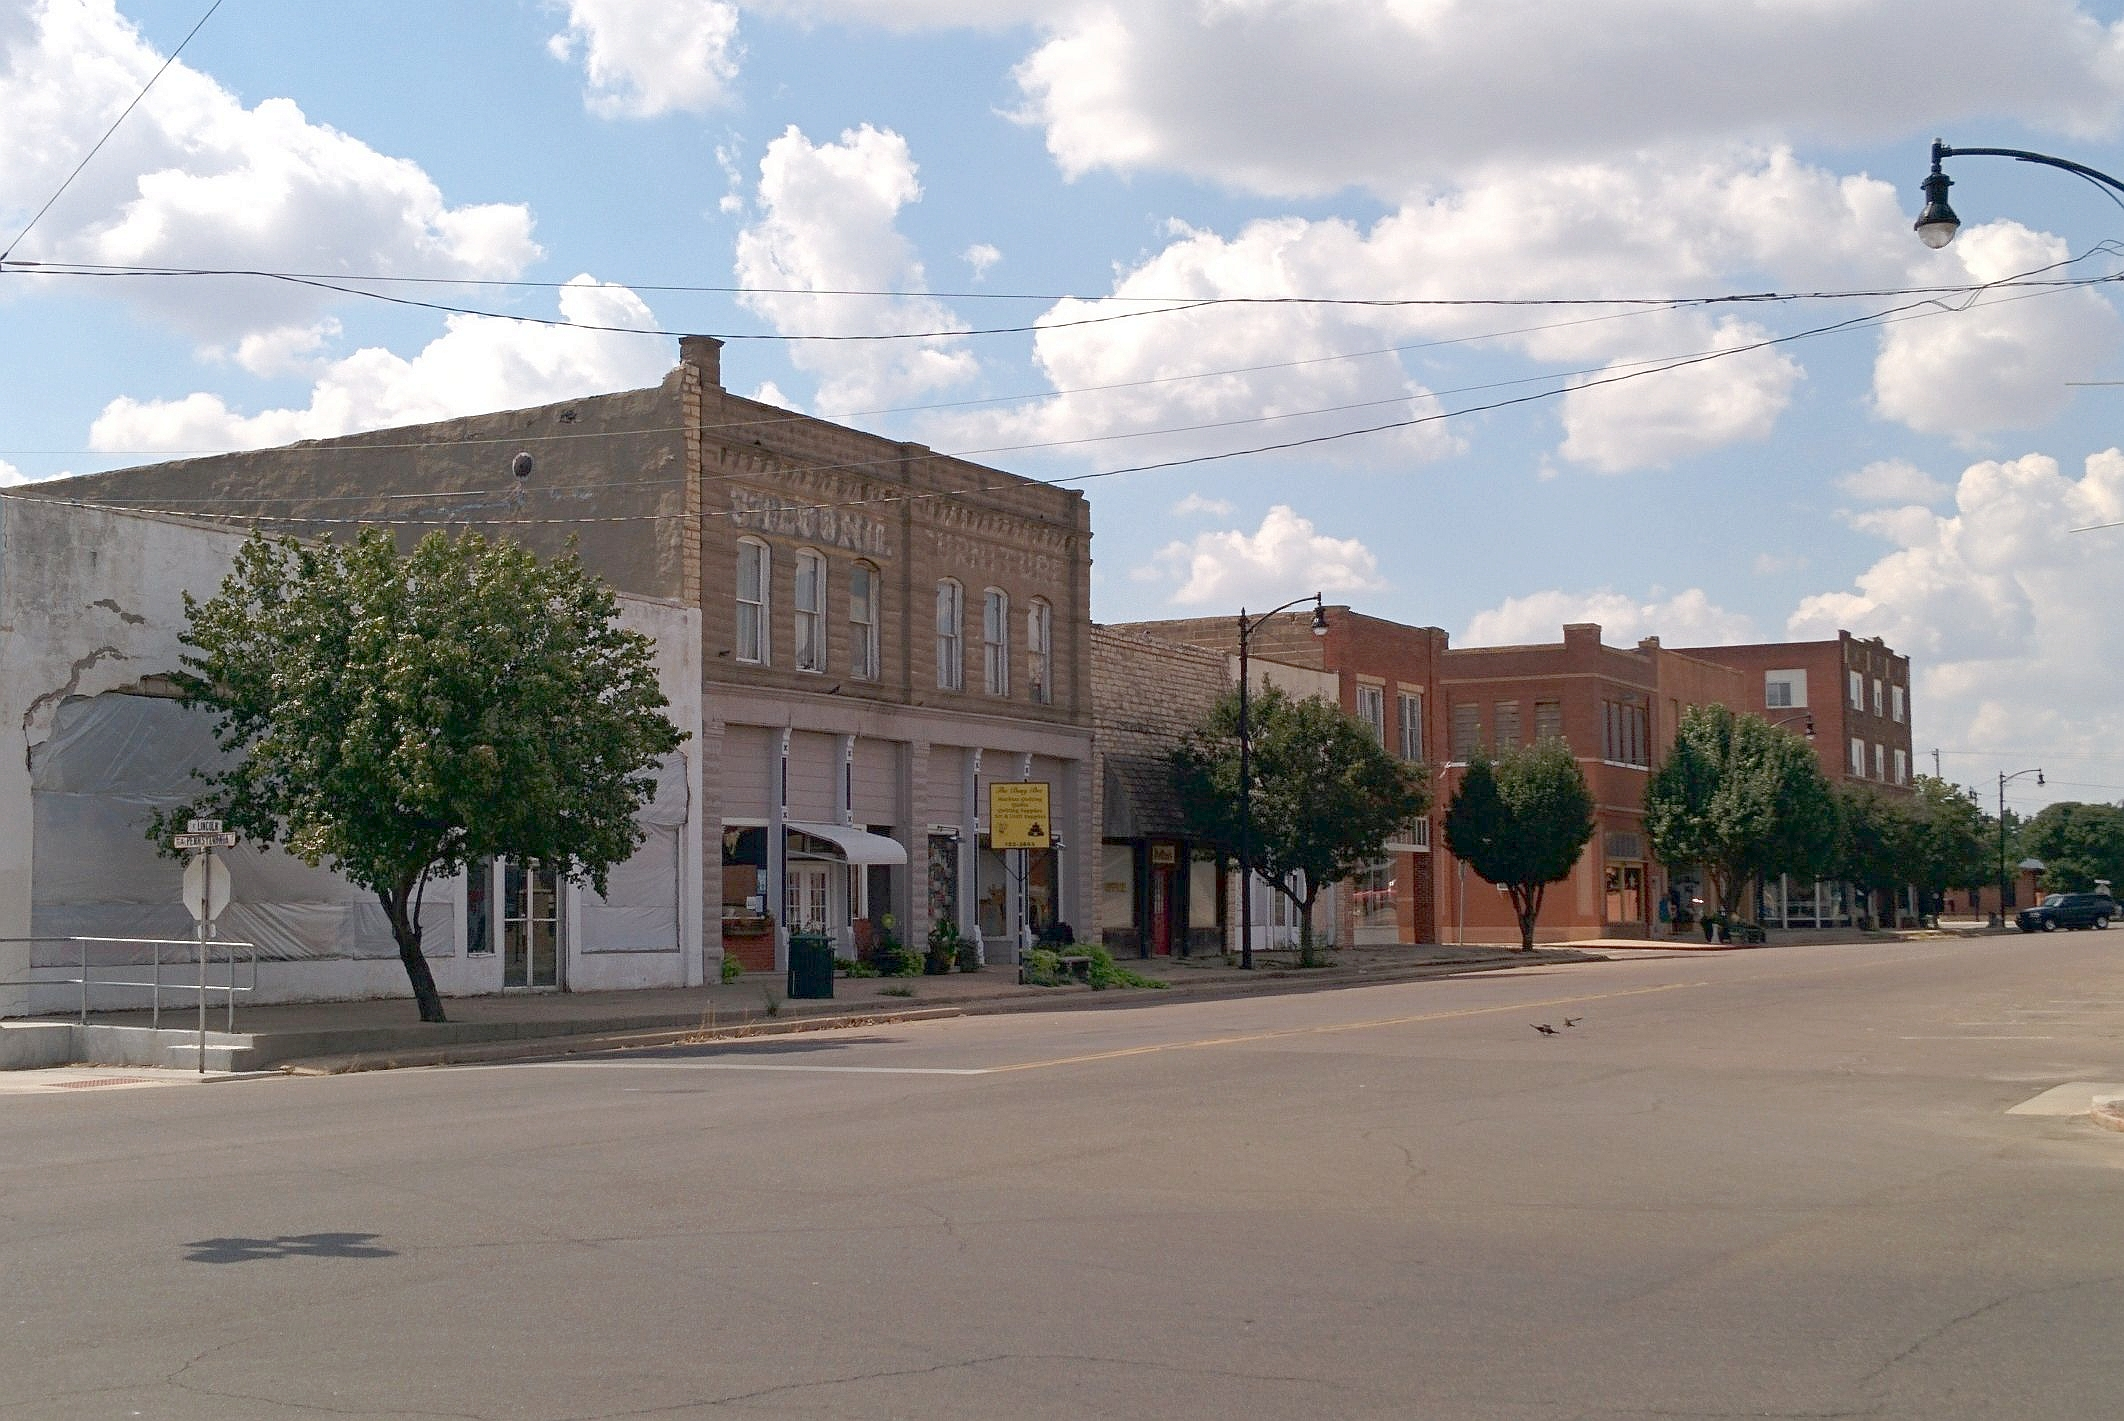 Downtown Magnum Historic District   By Crimsonedge34 - Own work, CC BY-SA 3.0, https://commons.wikimedia.org/w/index.php?curid=35741116